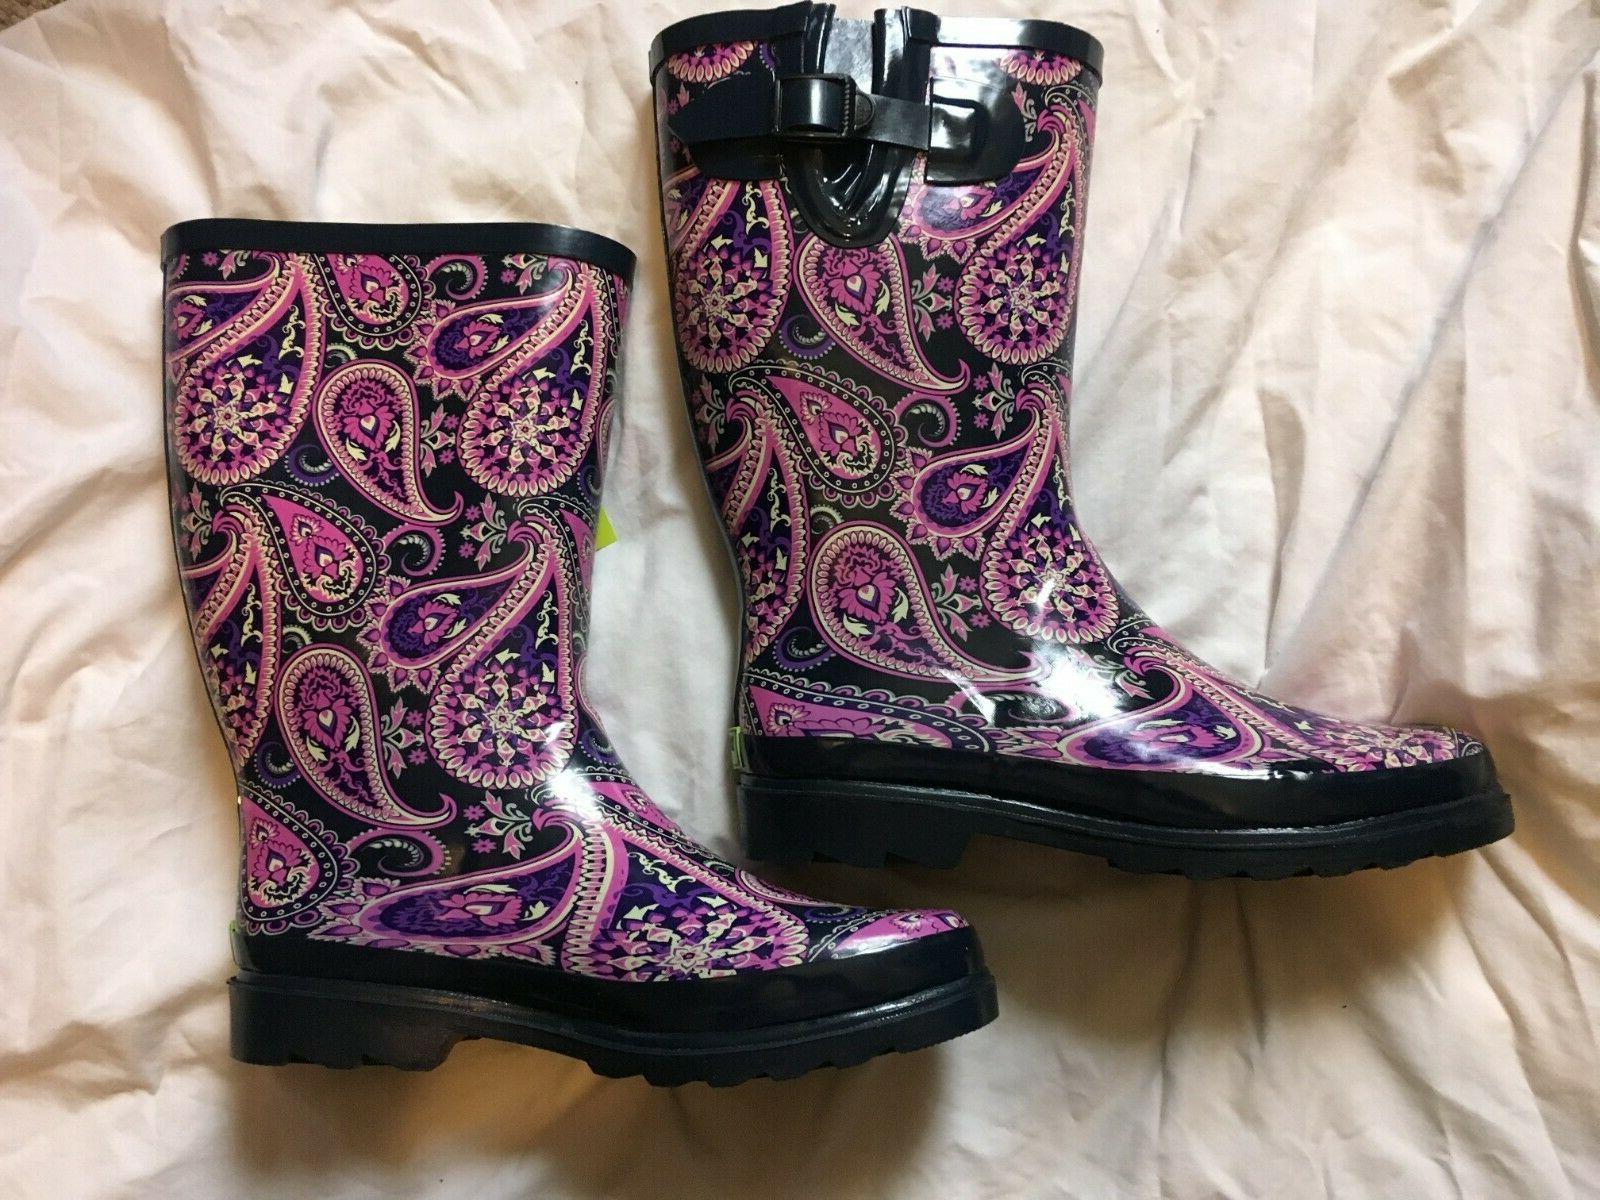 NWT Western Chief Boots, Waterproof Rain Snow Pink Paisley Blue